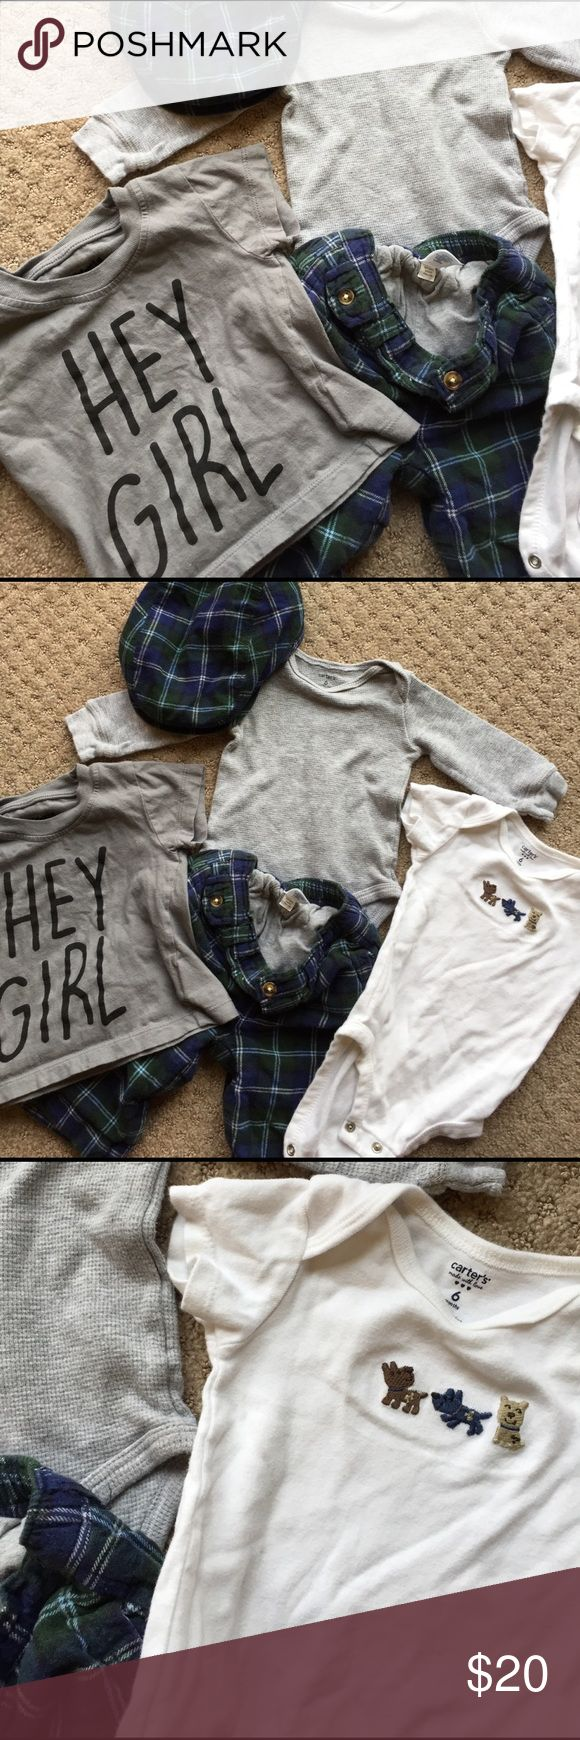 "Irish lad green and blue boys 6-12 month 5 piece set includes: 6 month carters onsie with dogs, 6 month thermal carters shirt, 6-12 month baby gap blue and green plaid pants with pockets and matching newsboy hat, 12 month freeze for kids ""hey girl"" tee shirt GAP Matching Sets"